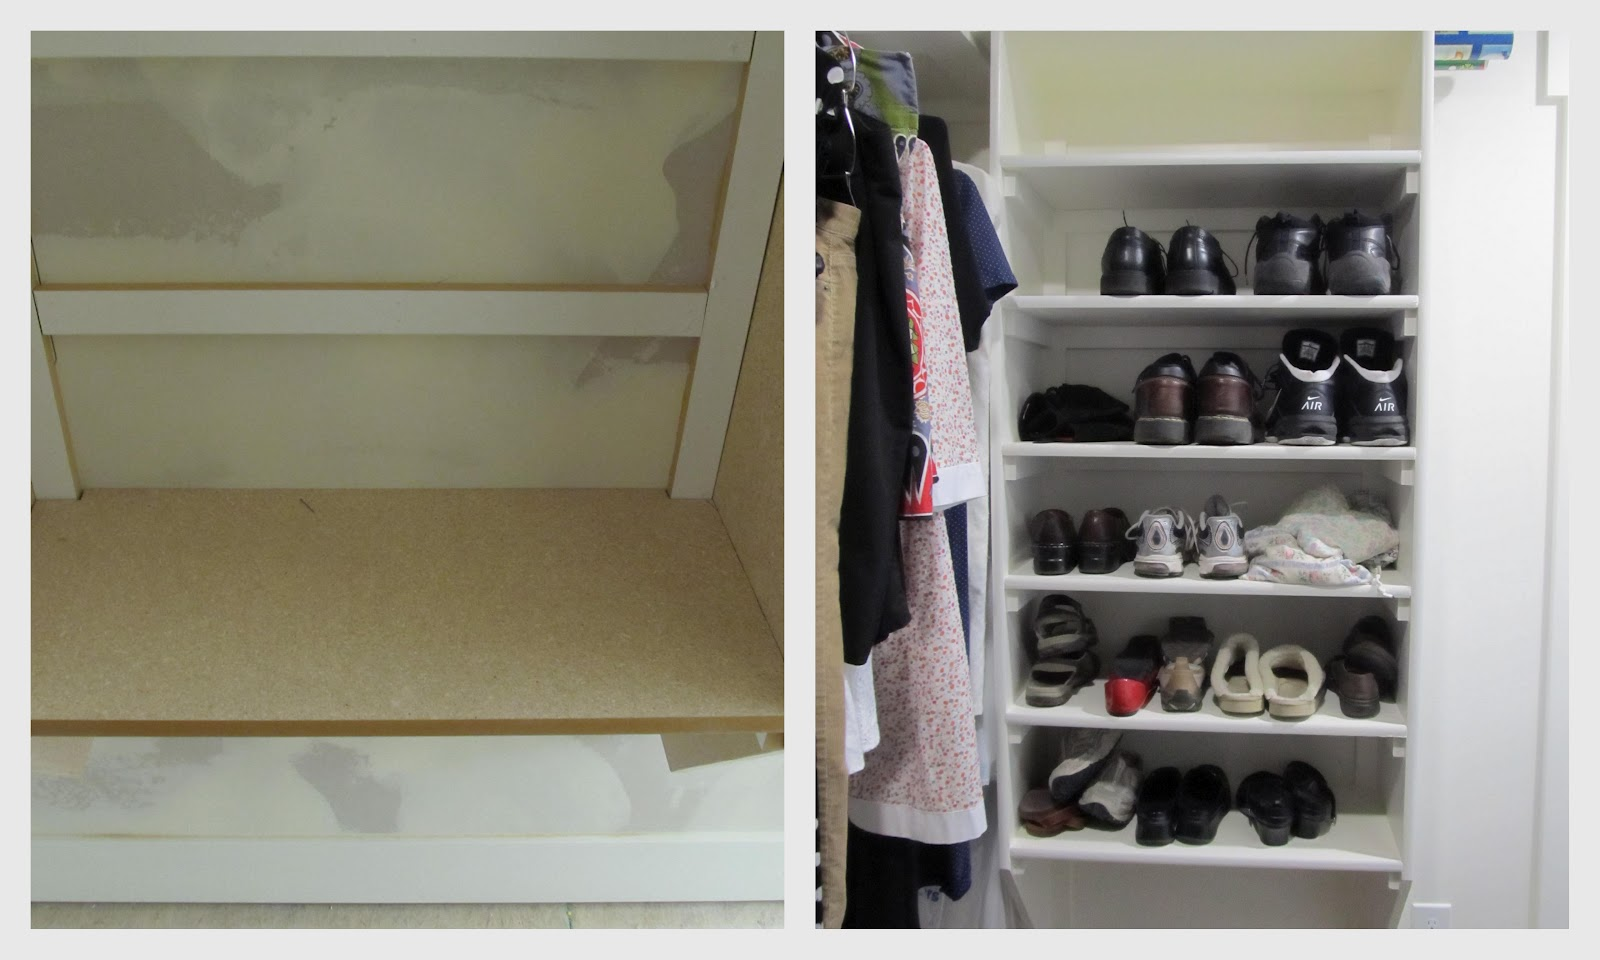 Pickup Some Creativity Tips For DIY Closet Shelving